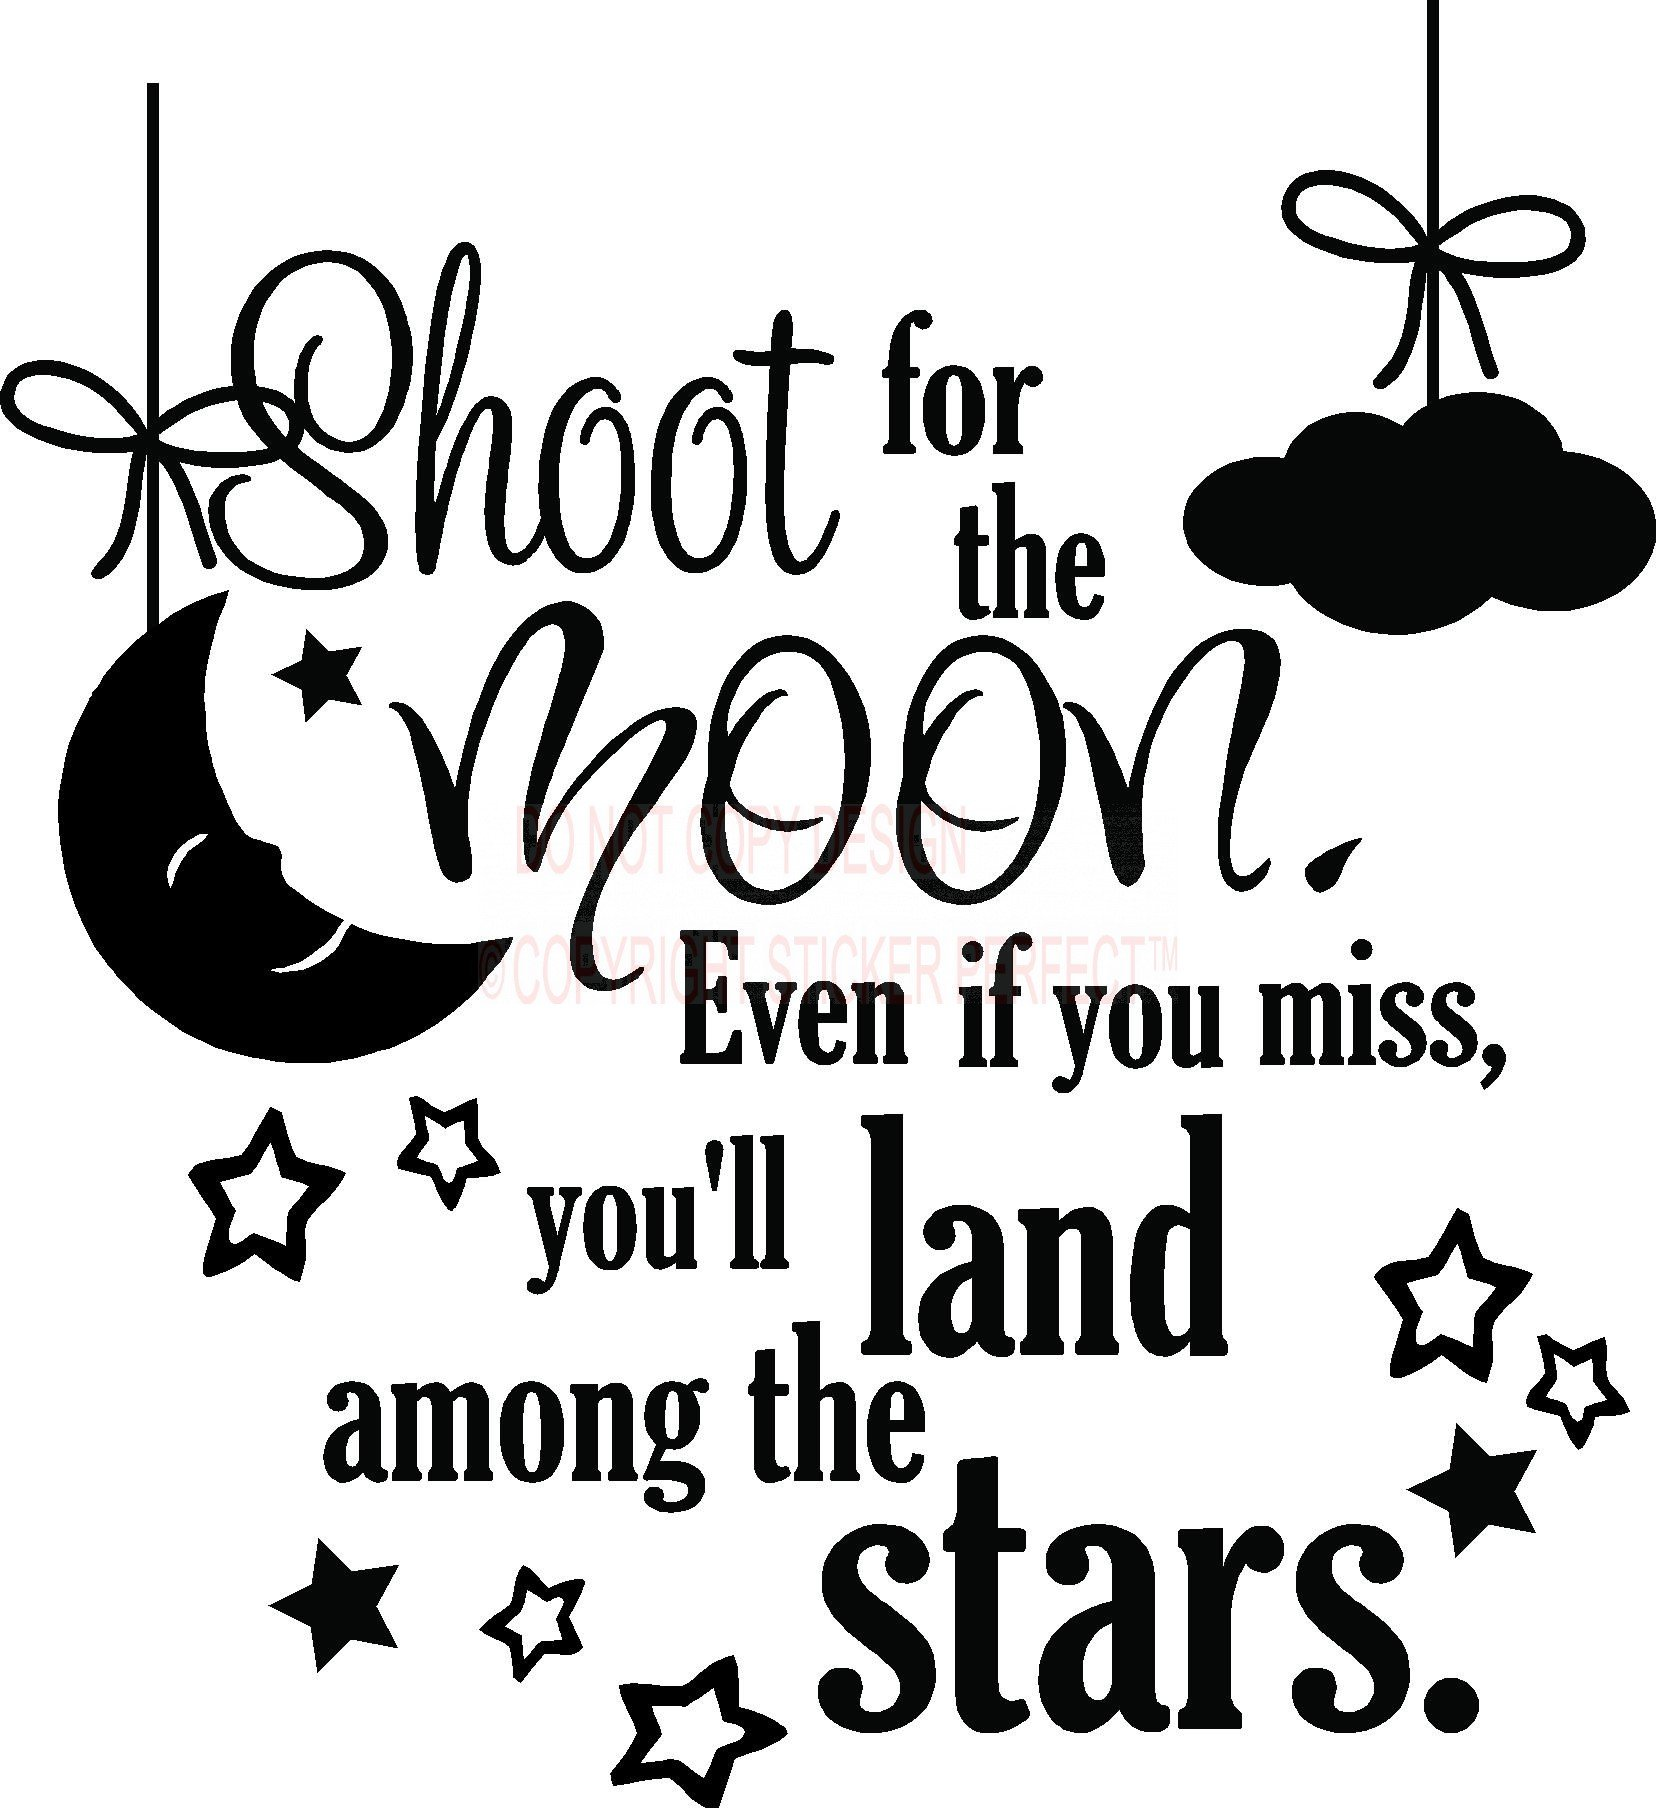 Bruce Lee Moon Quote: Shoot For The Moon Quotes And Sayings. QuotesGram